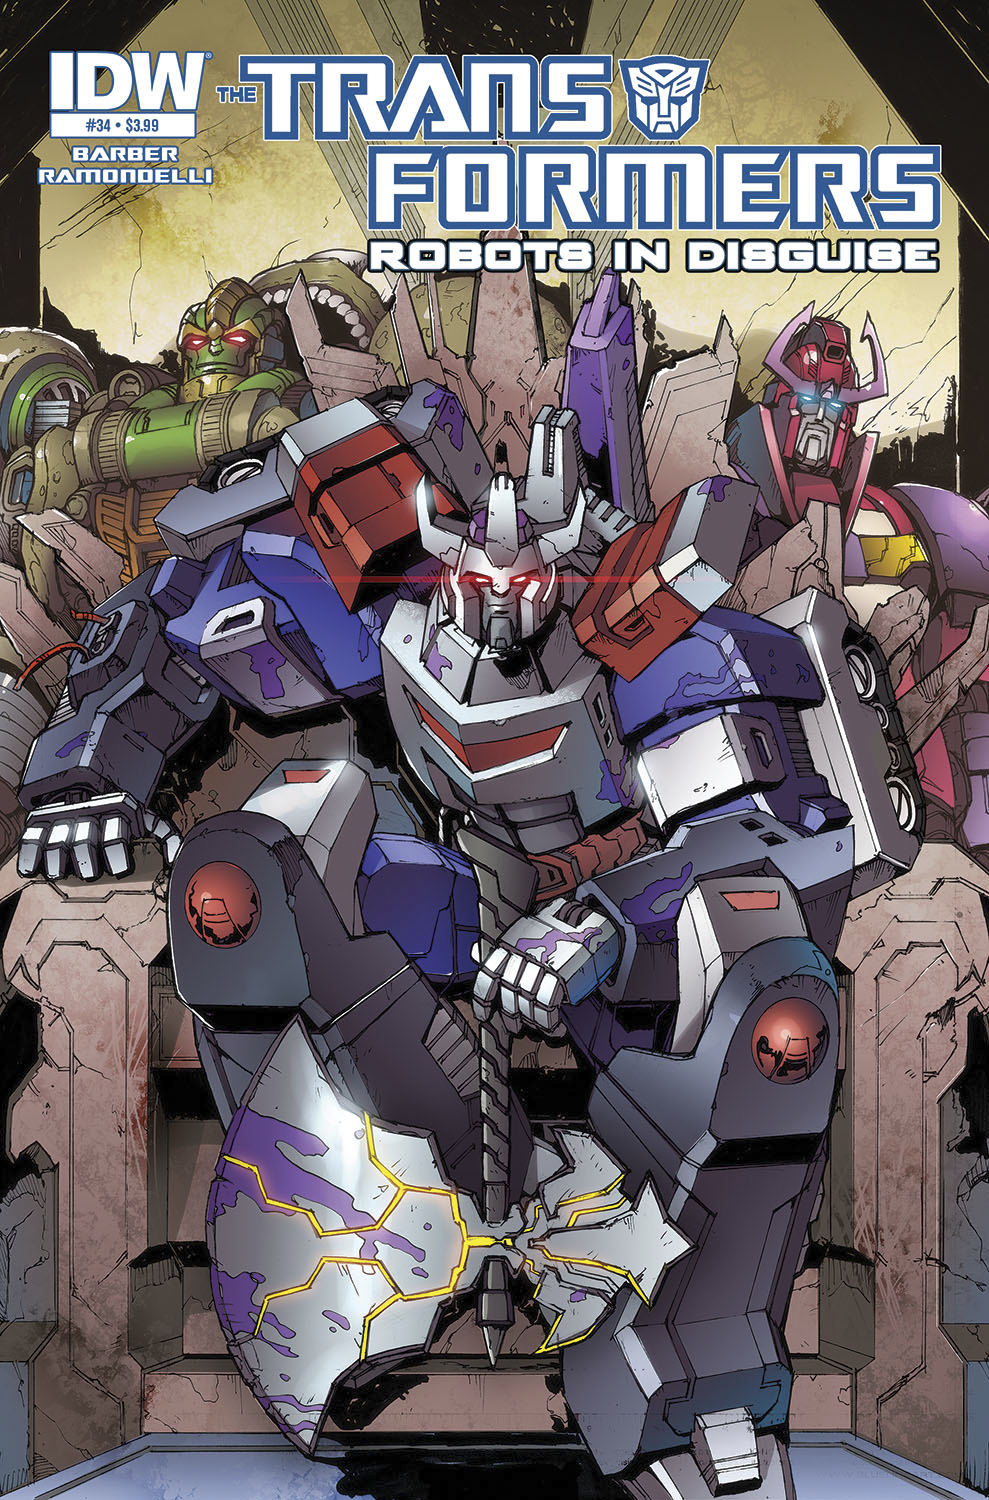 TRANSFORMERS ROBOTS IN DISGUISE #34 DAWN O/T AUTOBOTS